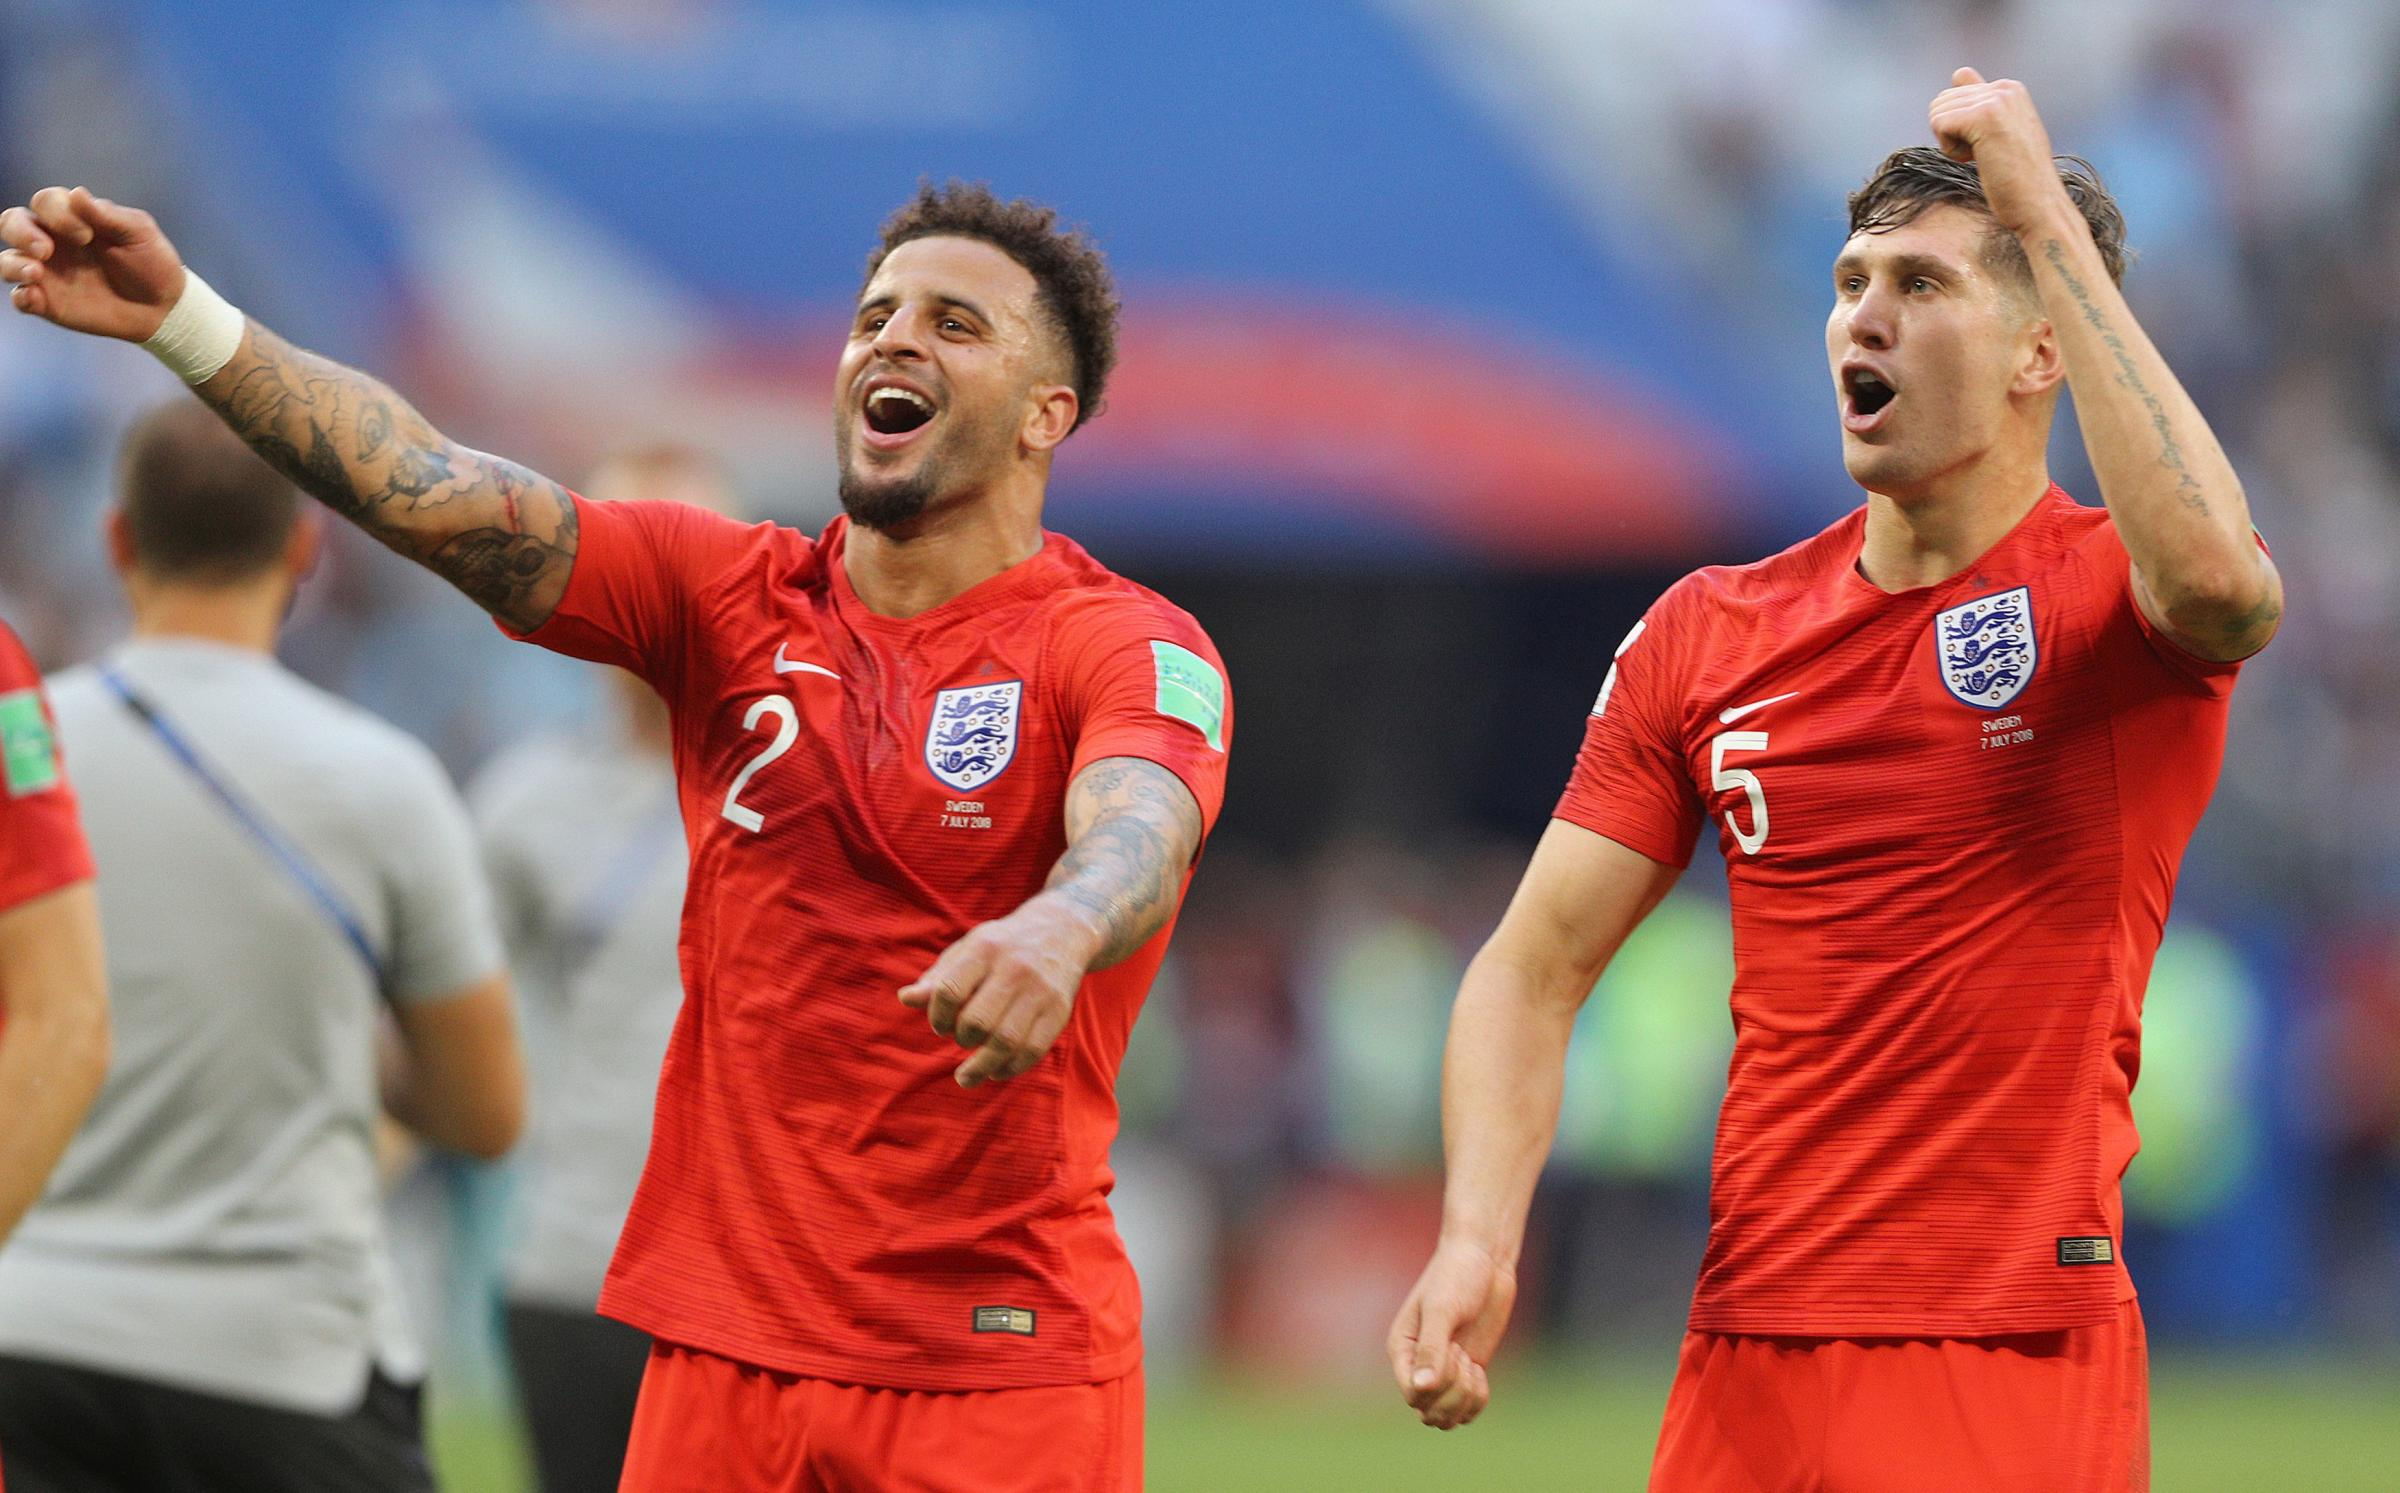 England's Kyle Walker and John Stones (right) celebrate victory after the FIFA World Cup, Quarter Final match on Saturday. Picture: PA